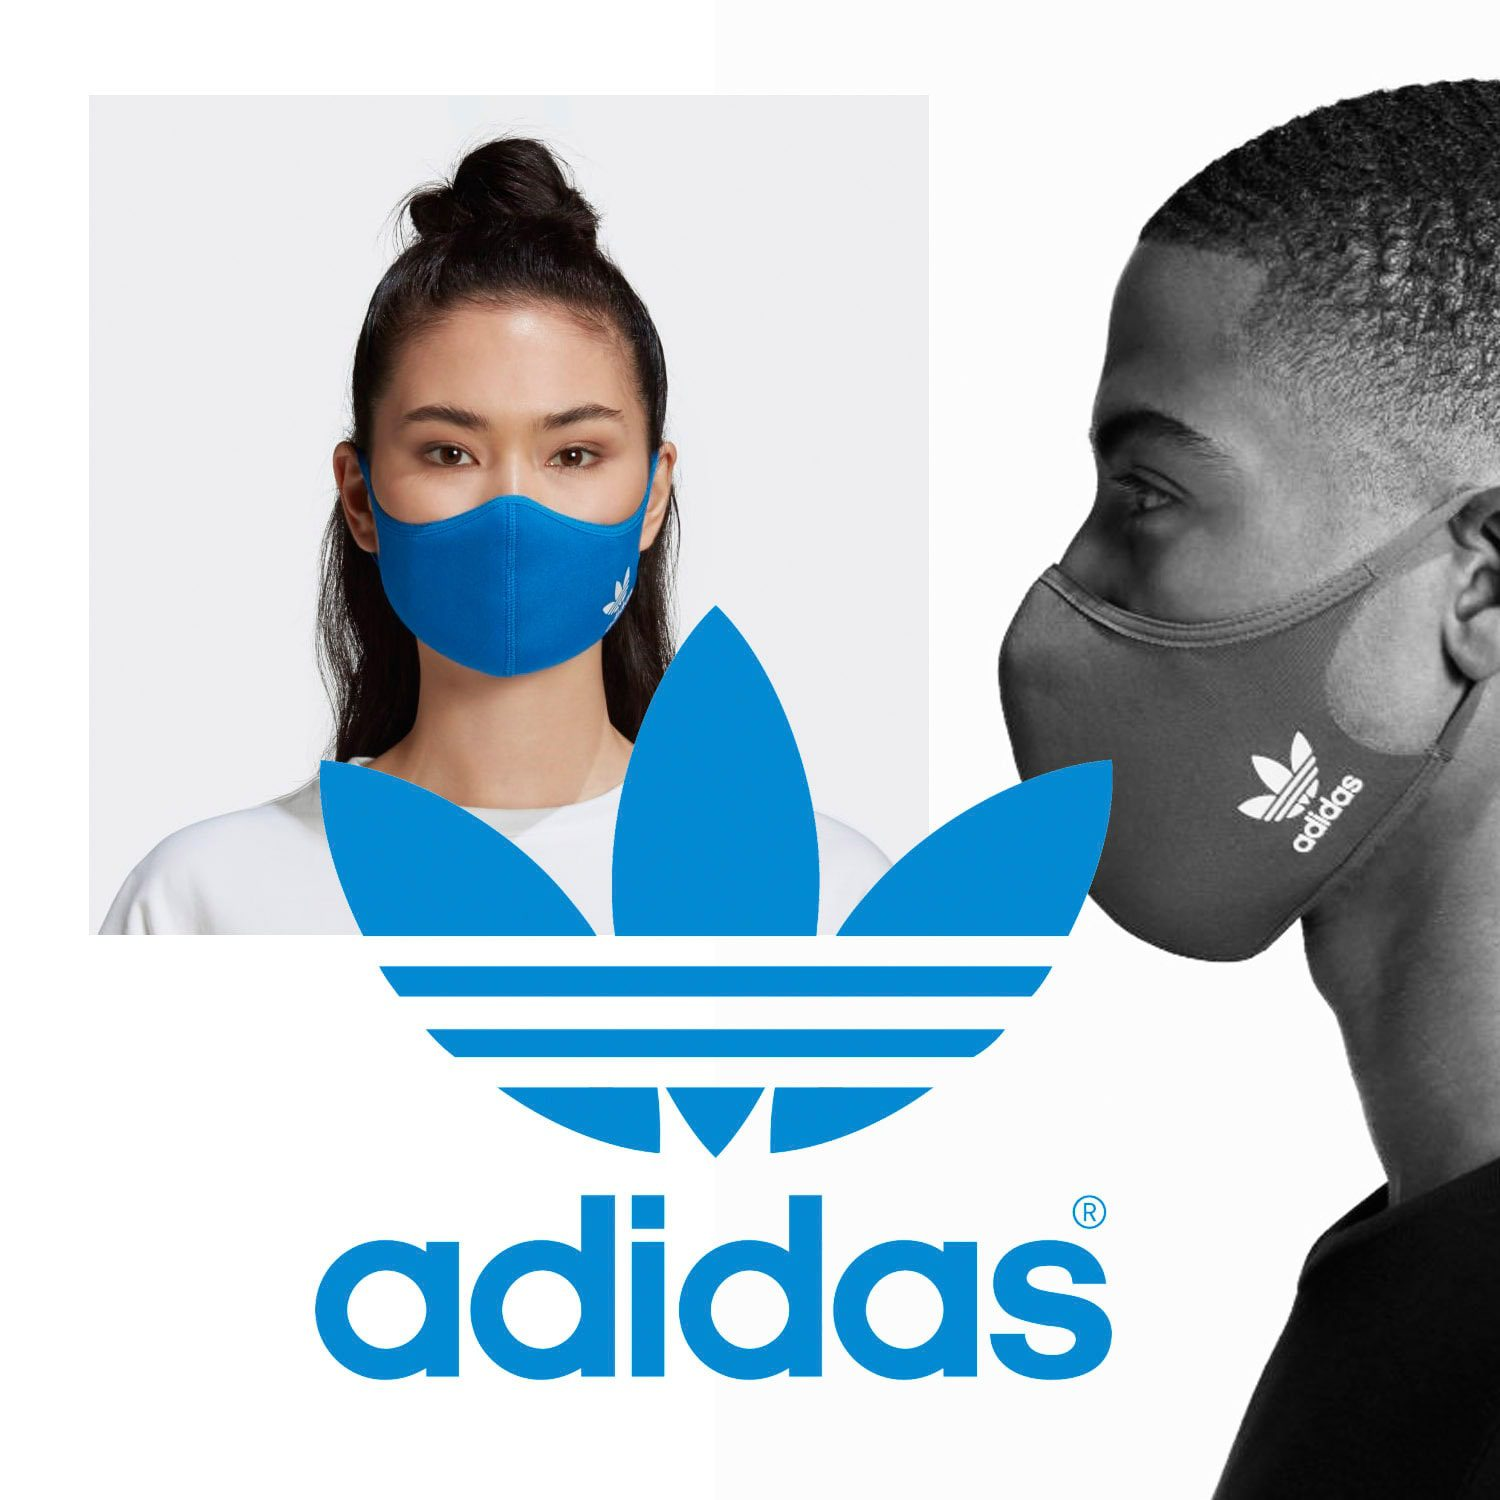 Adidas Protective Face Mask 2021 by RUNWAY MAGAZINE